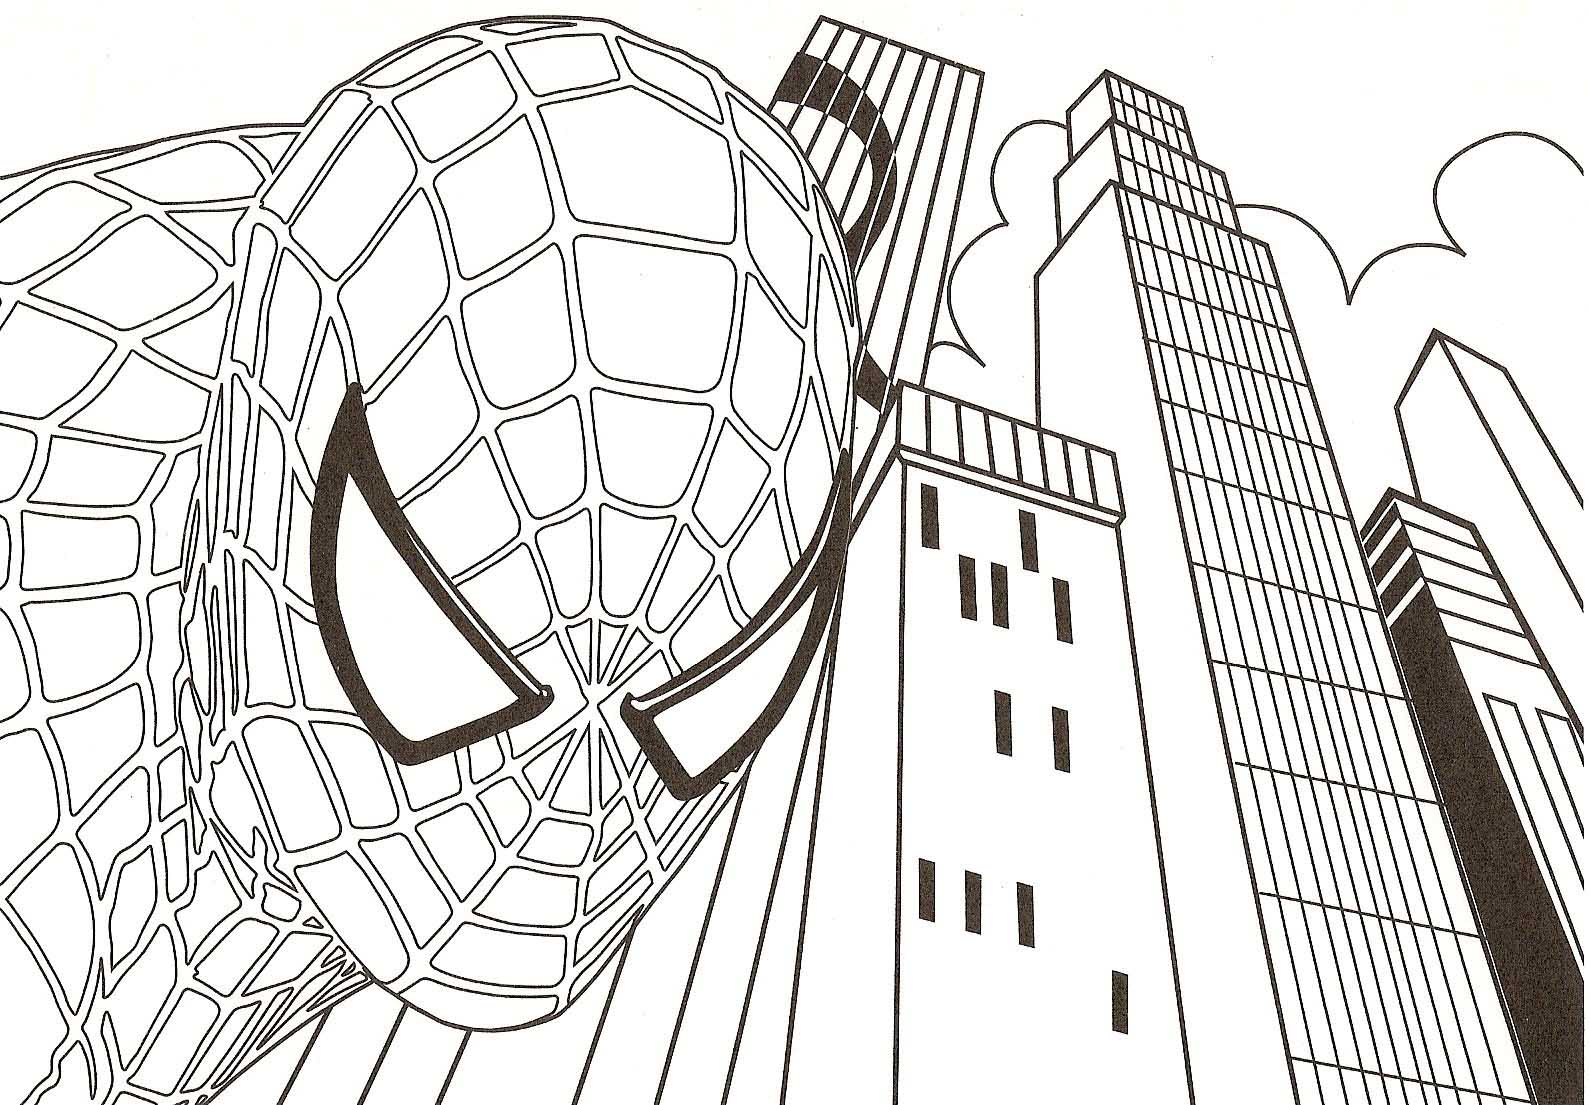 spiderman coloring pages games - Spiderman Coloring Pages Free